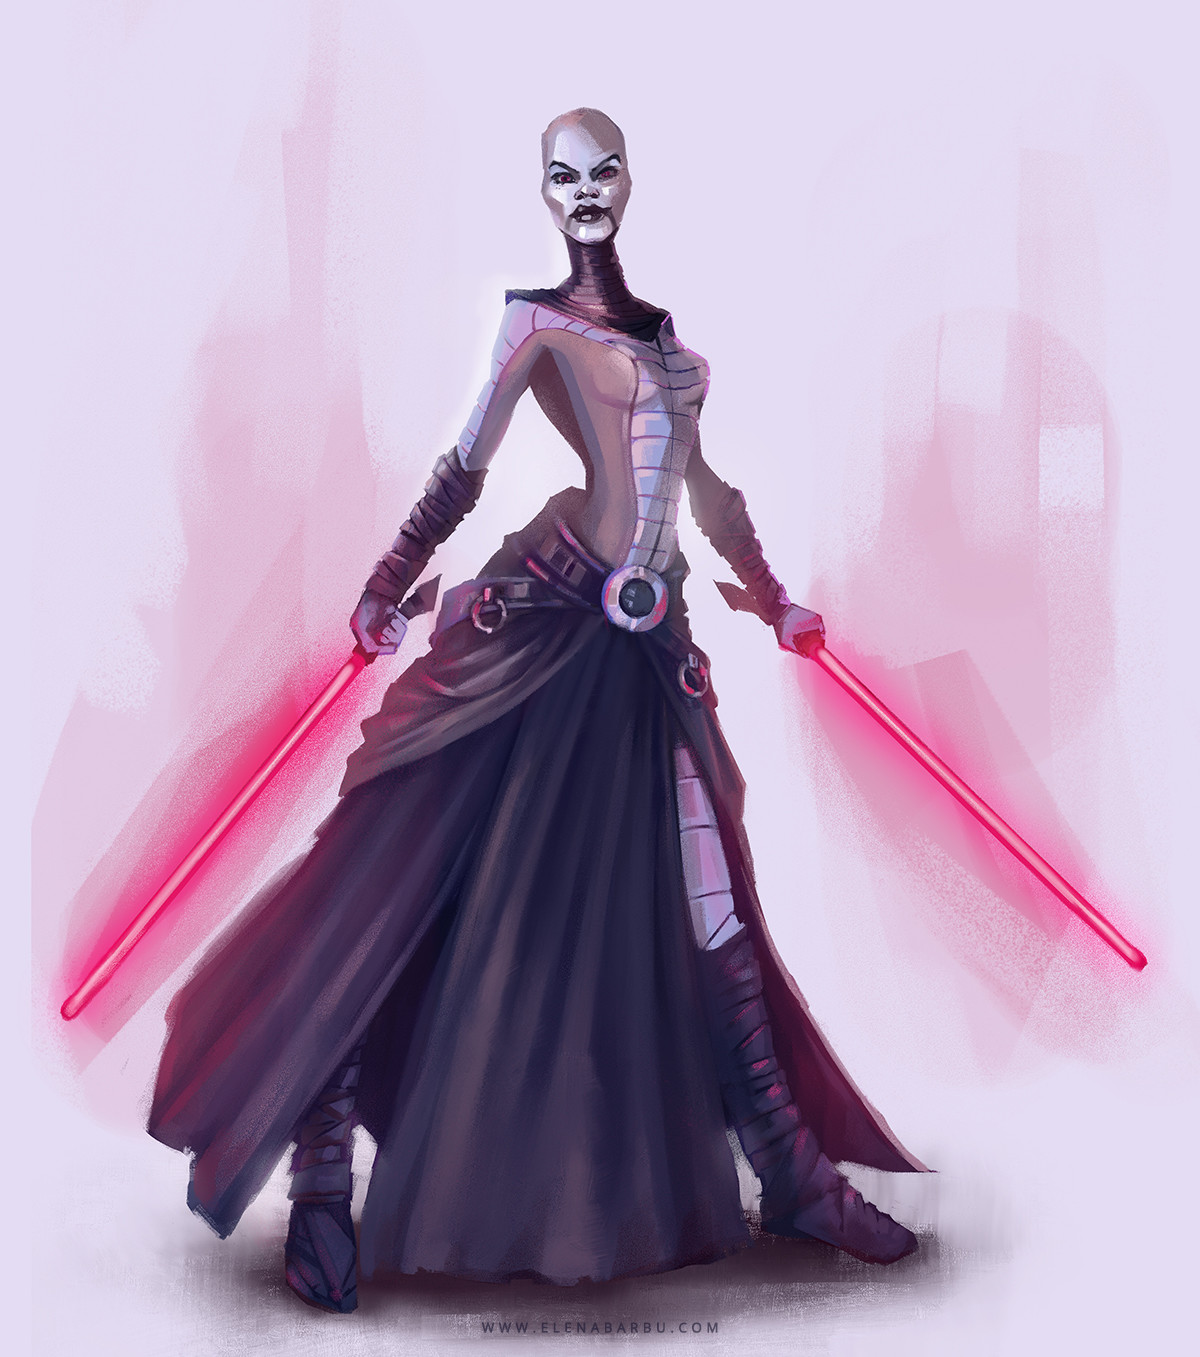 Elena barbu ventress3